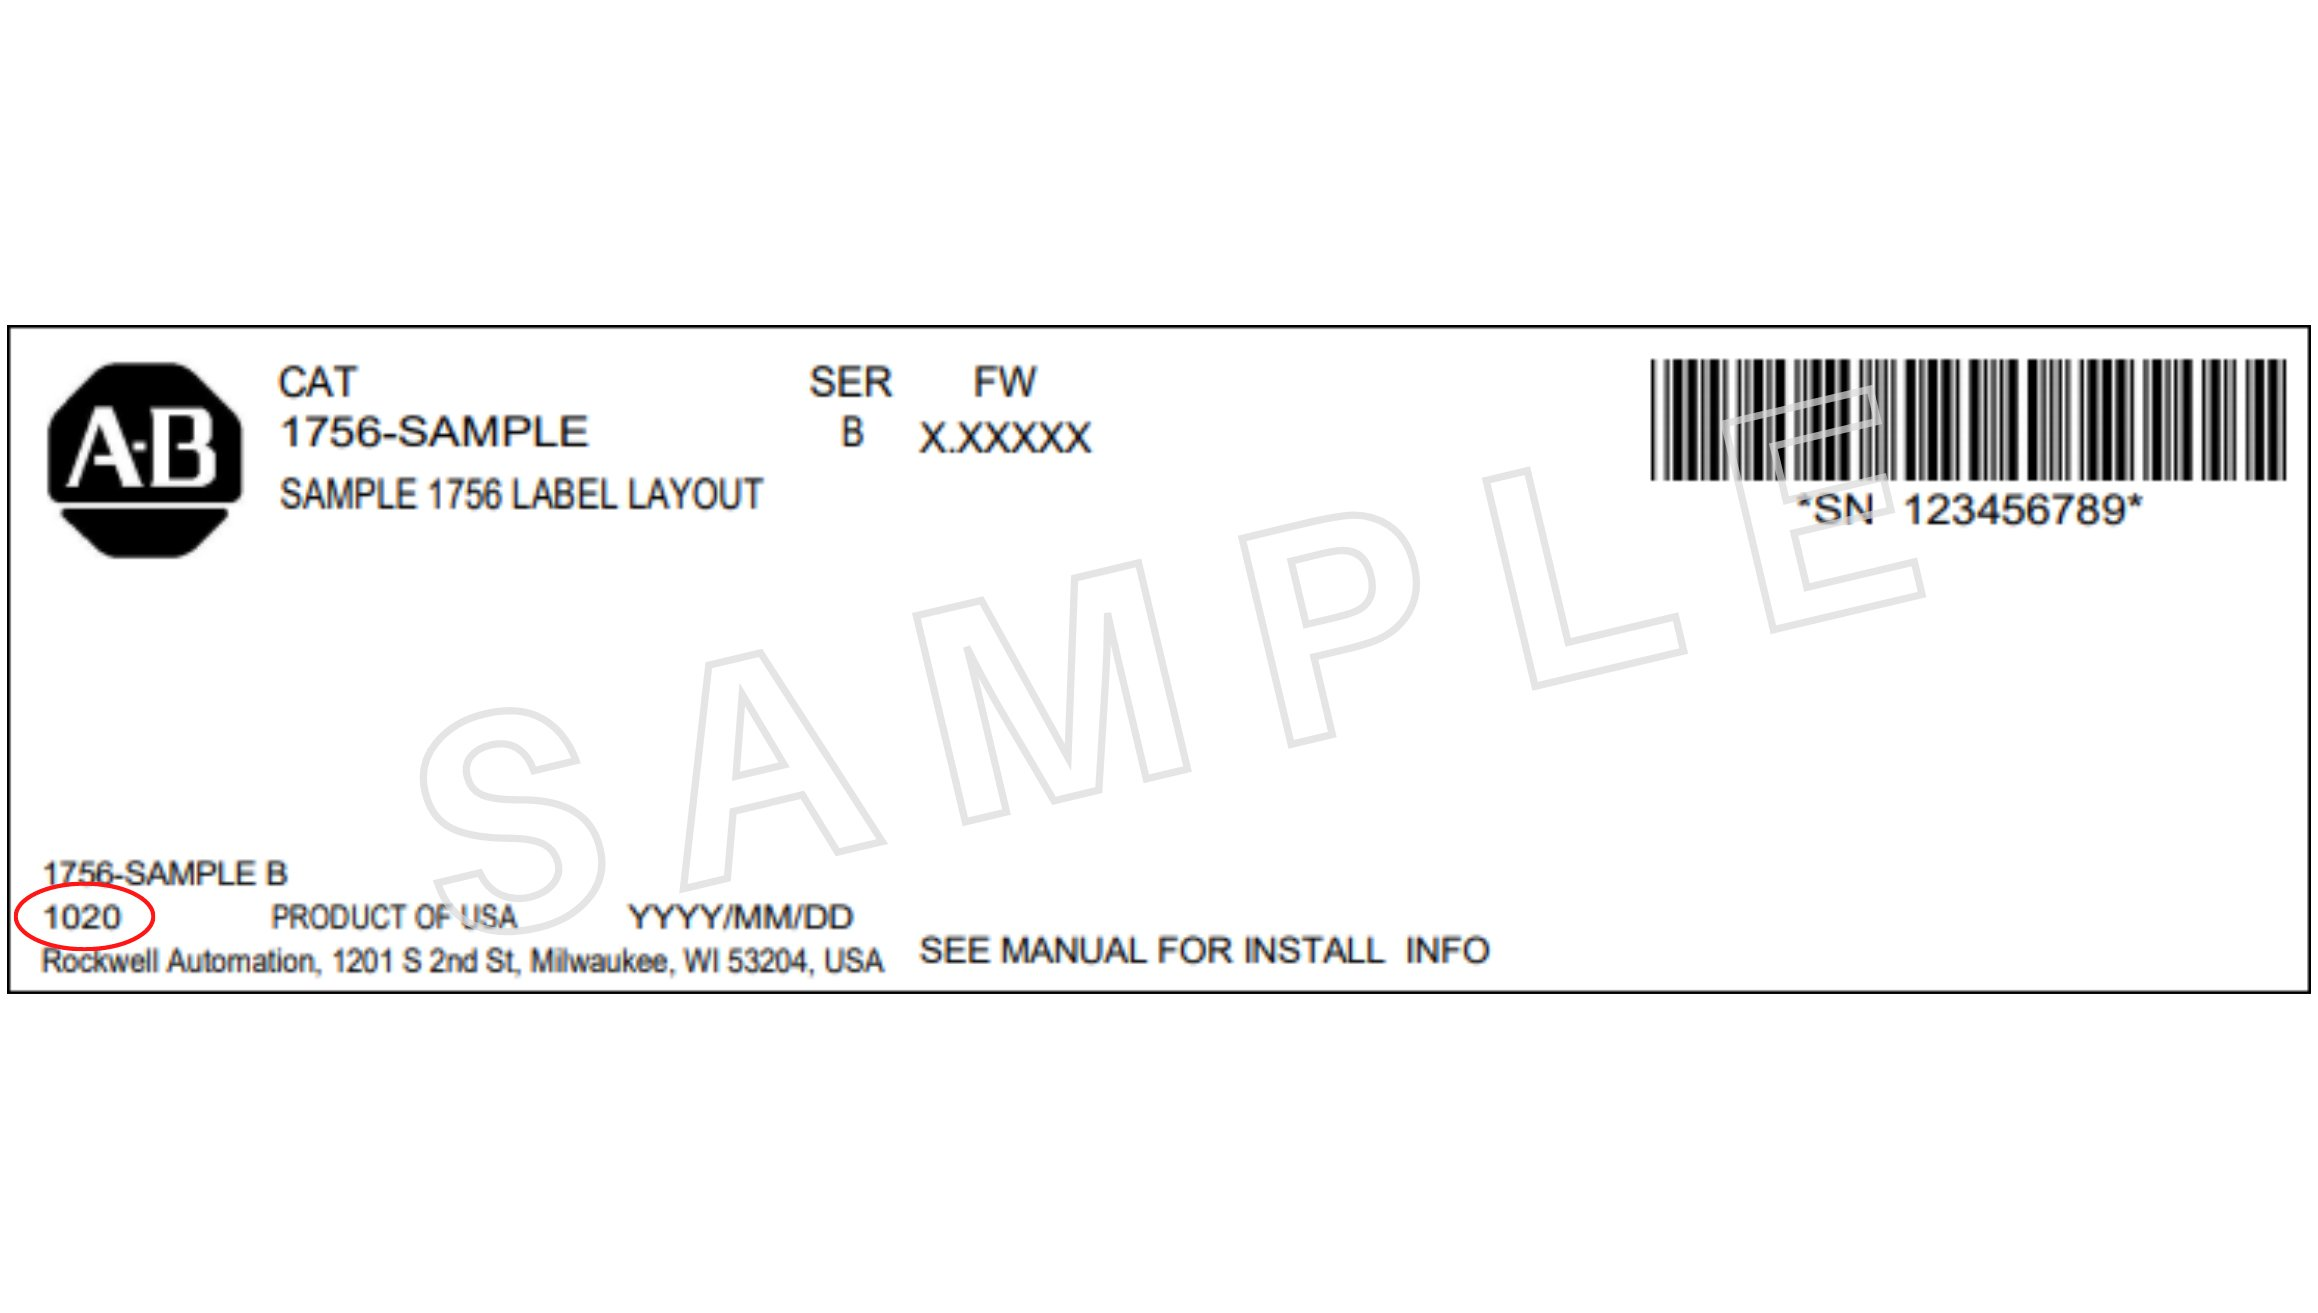 Rockwell Automation sample label